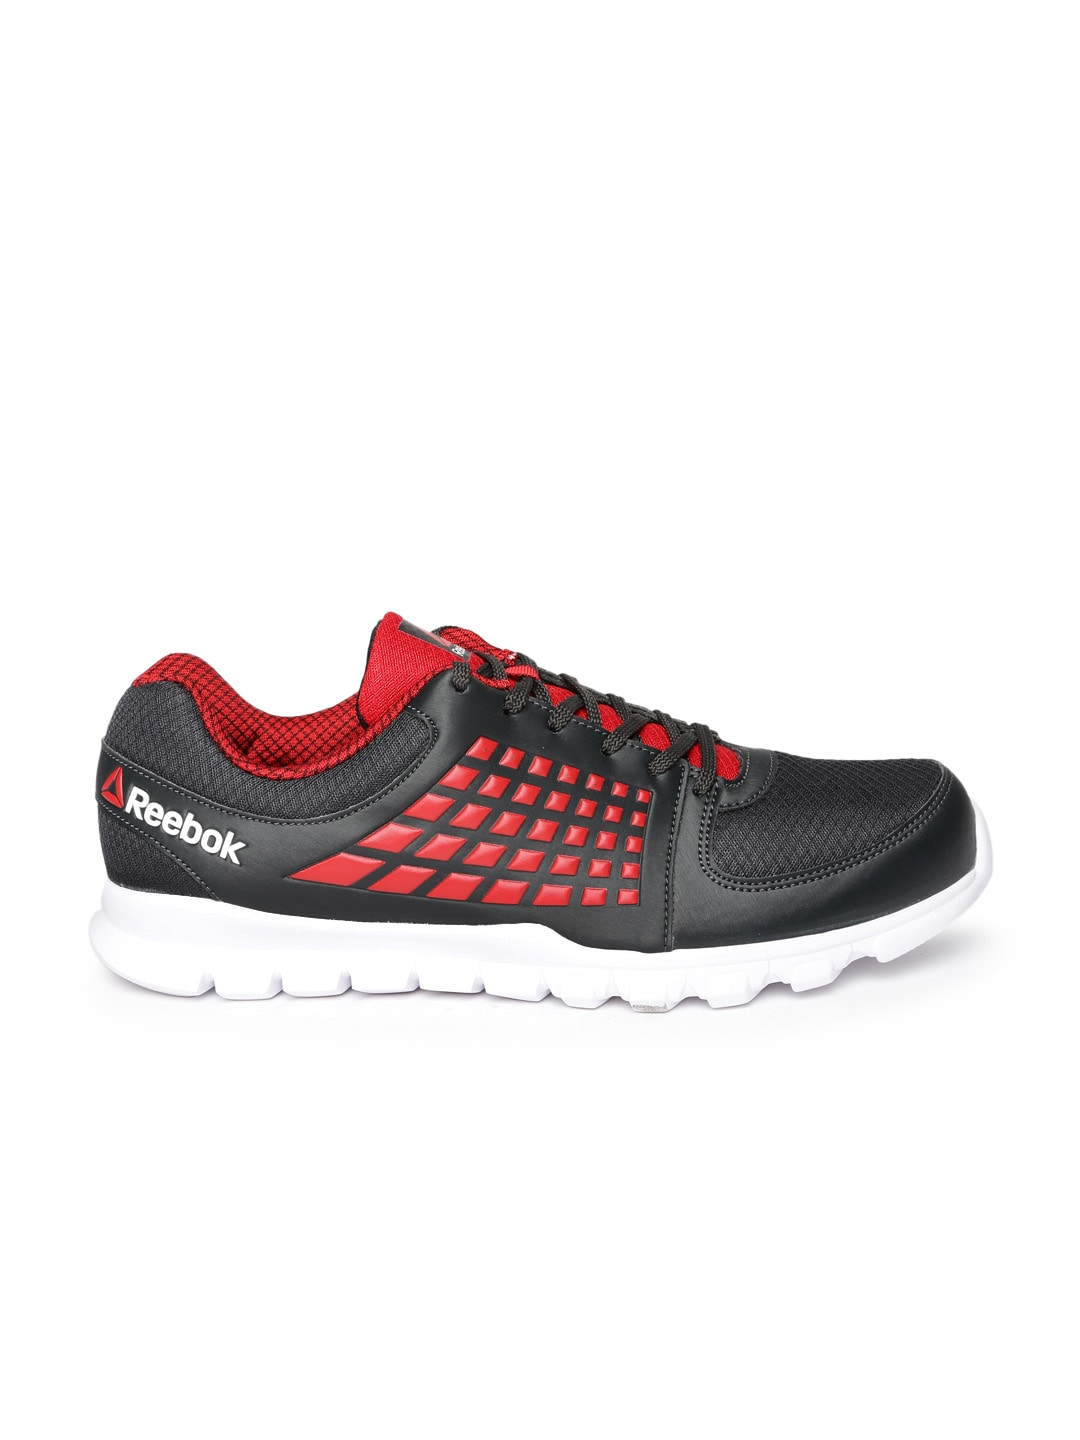 a775efa93 Buy reebok shoes price and models   OFF32% Discounted